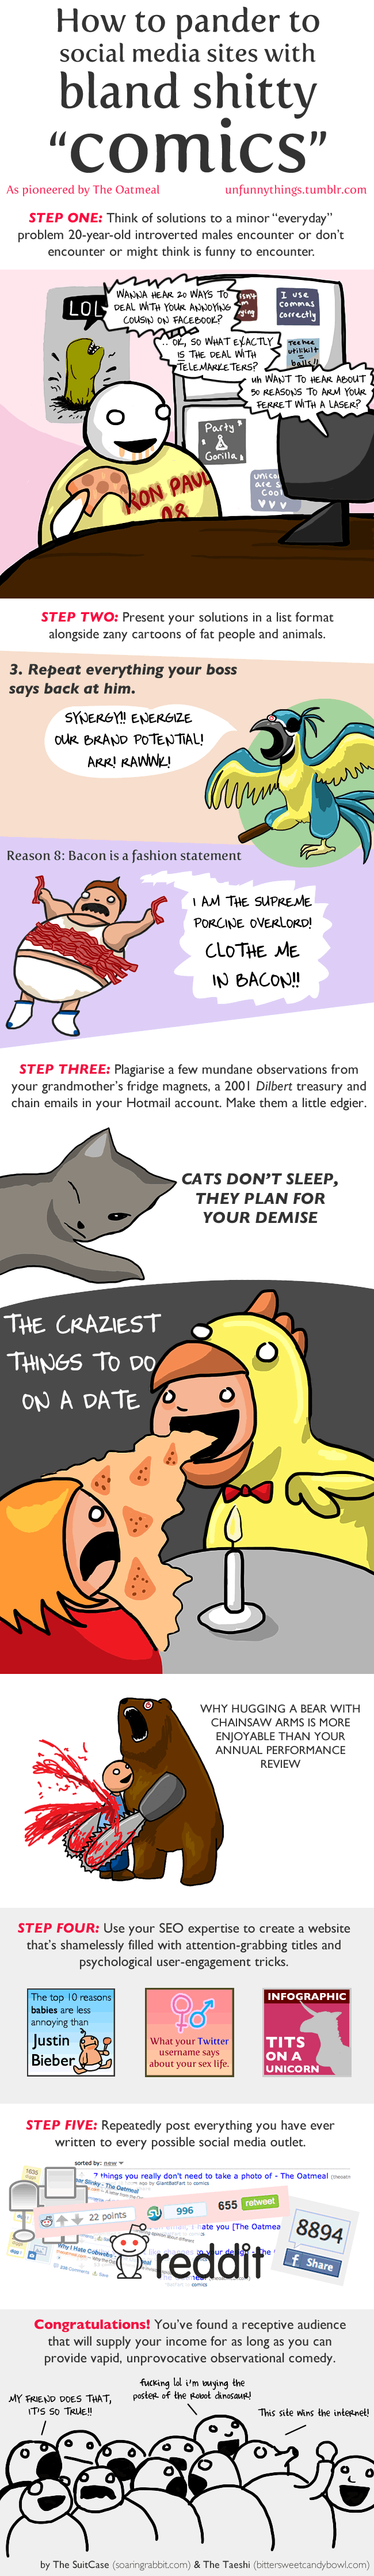 A parody comic about The Oatmeal